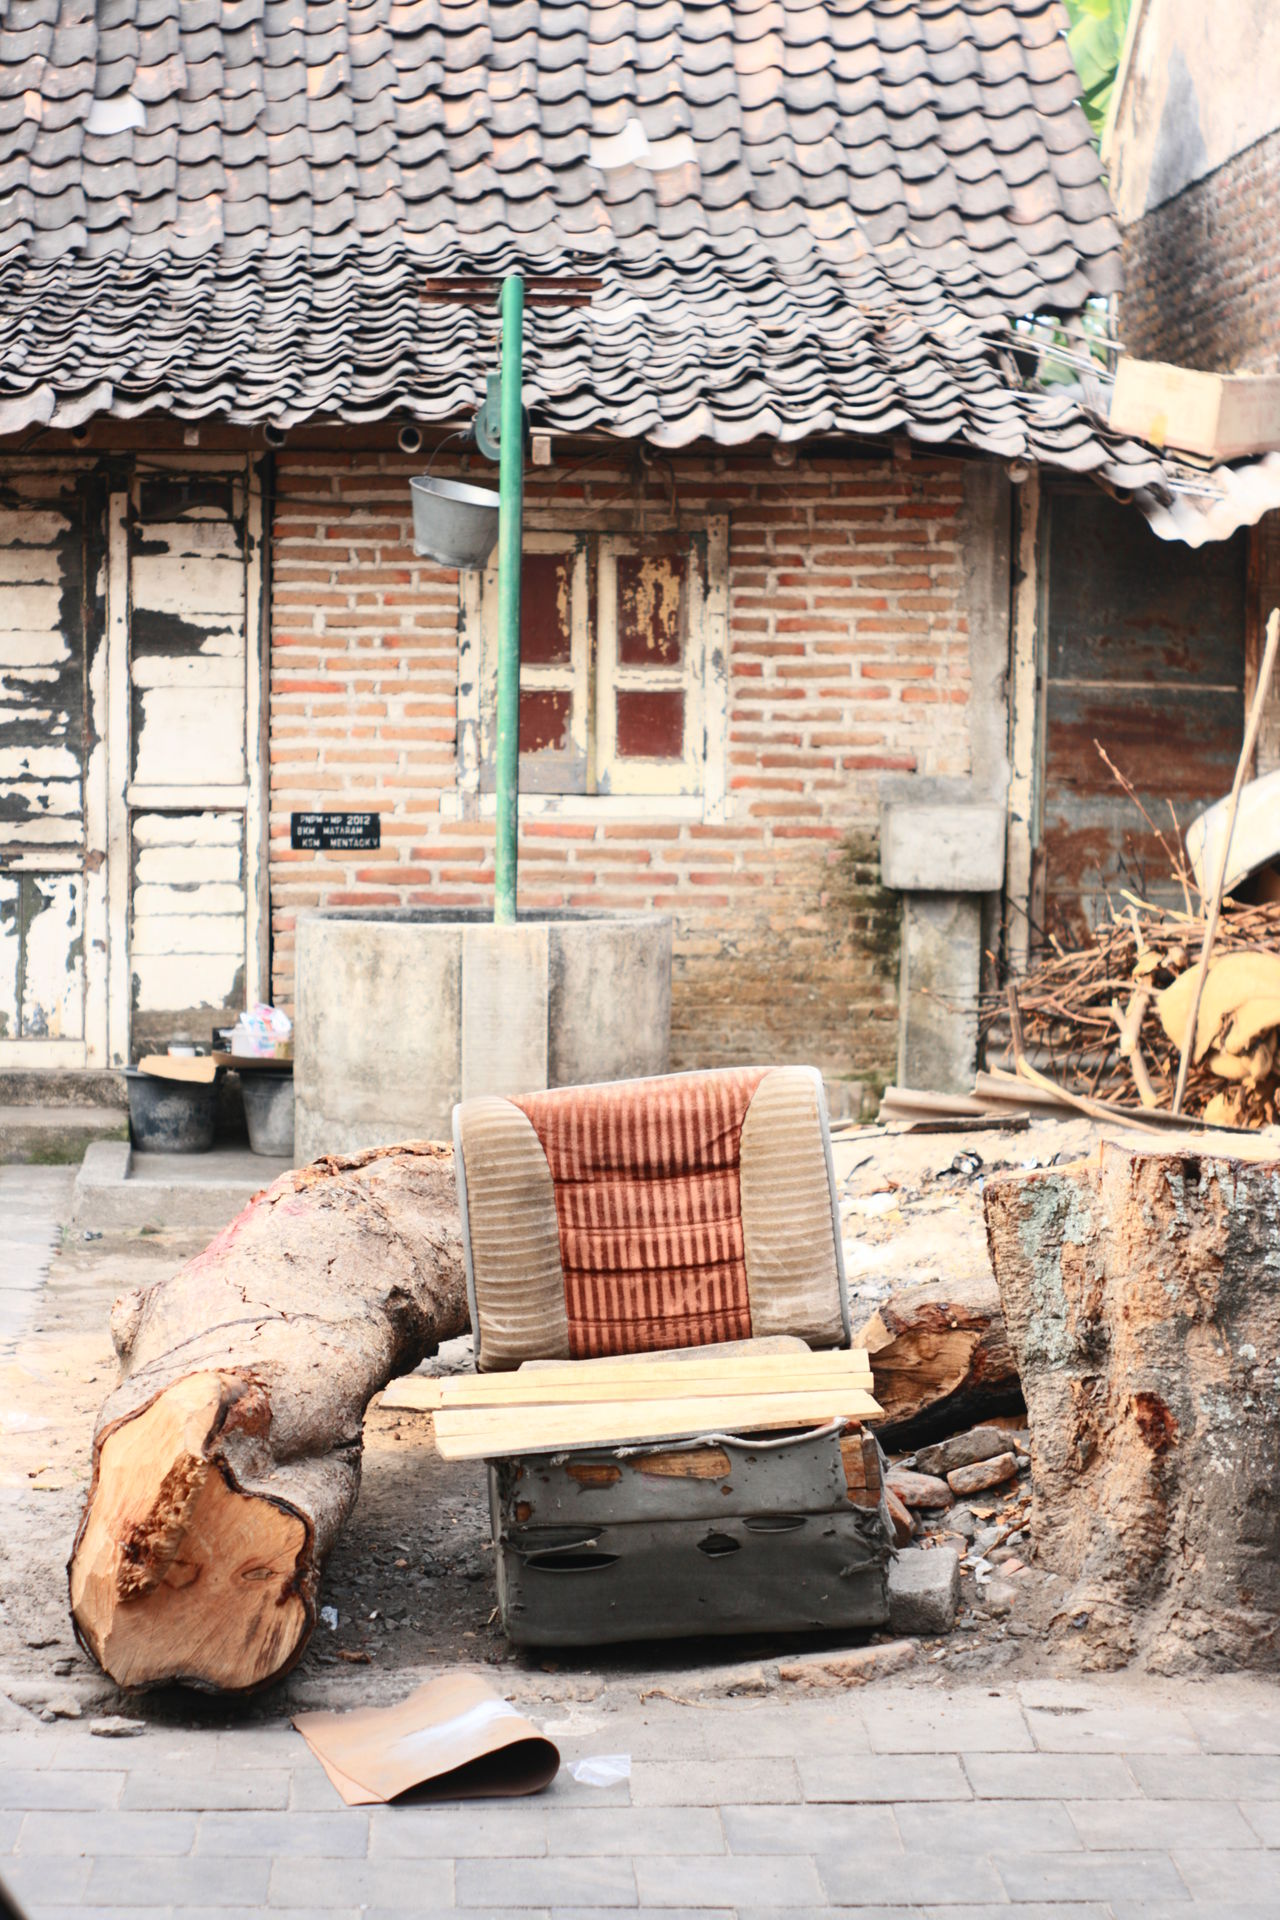 village in kota gede Architecture Authentic Authenticity Building Exterior Built Structure Couch Culture Day House Junk No People Outdoors Roof Tree Trunk Village BYOPaper!